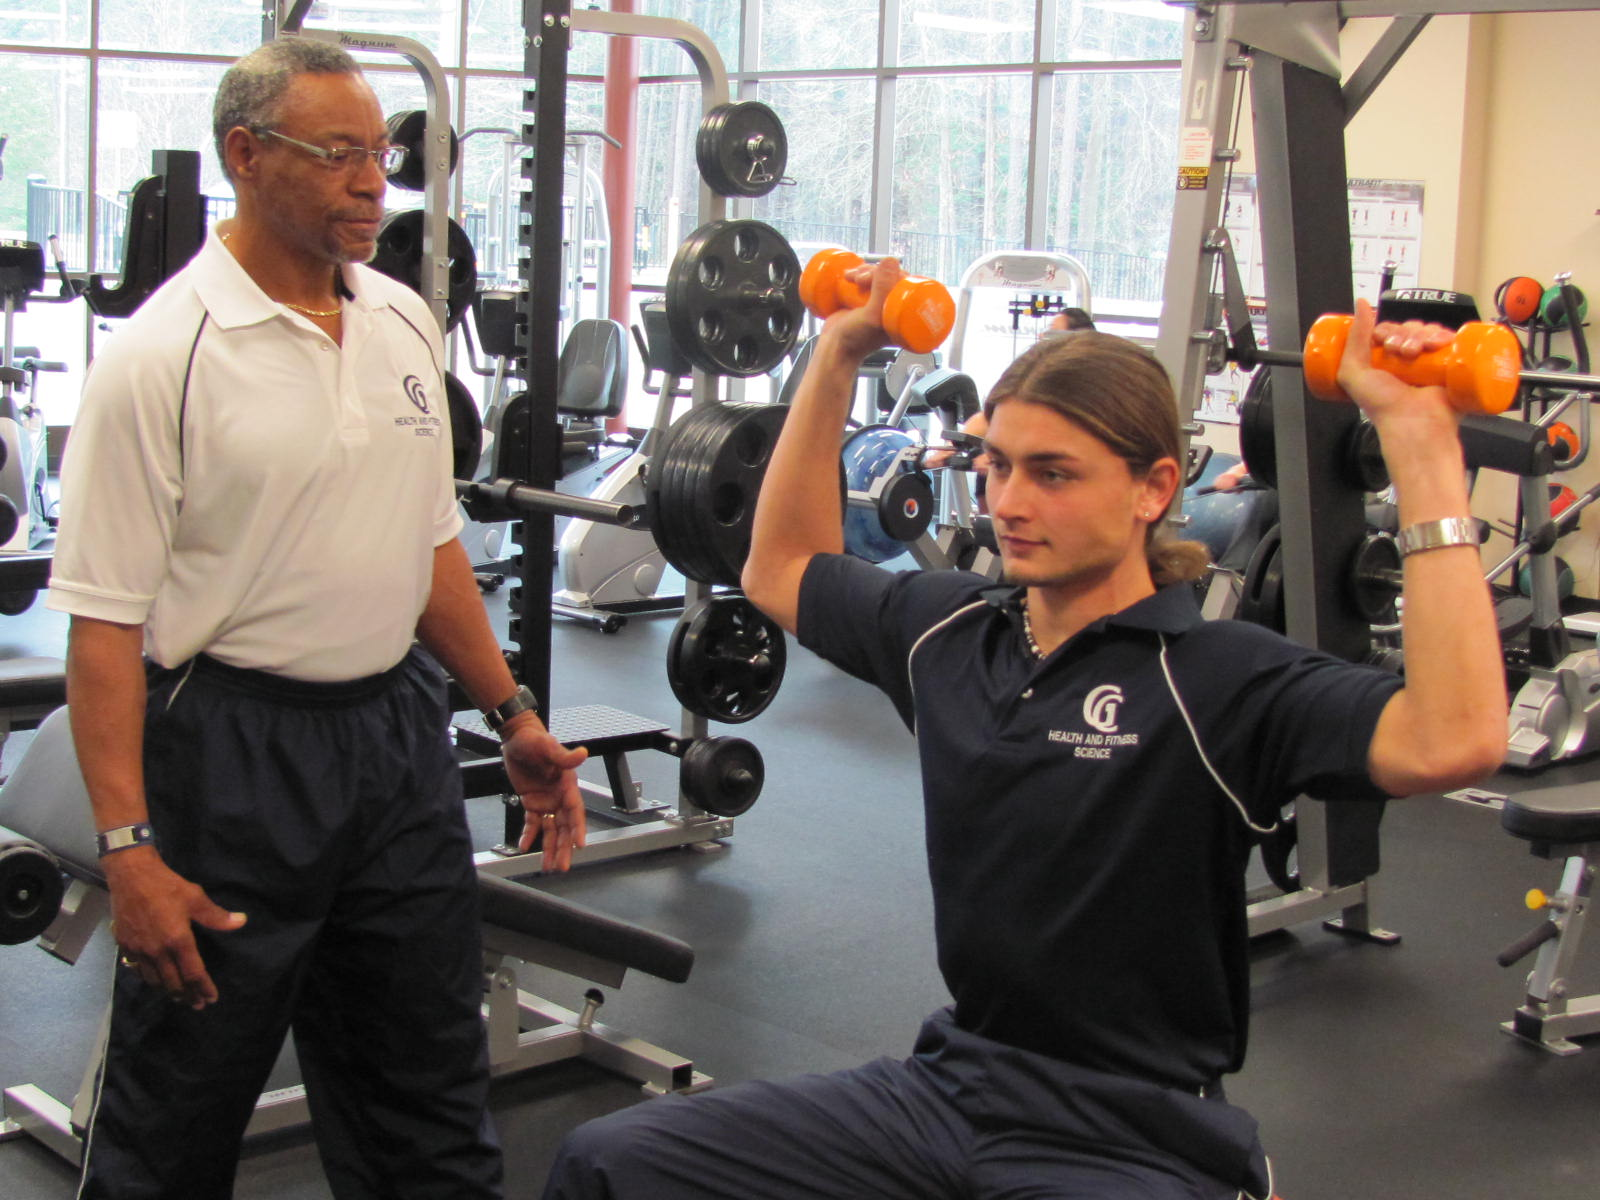 Health And Fitness Science Program Train Students For